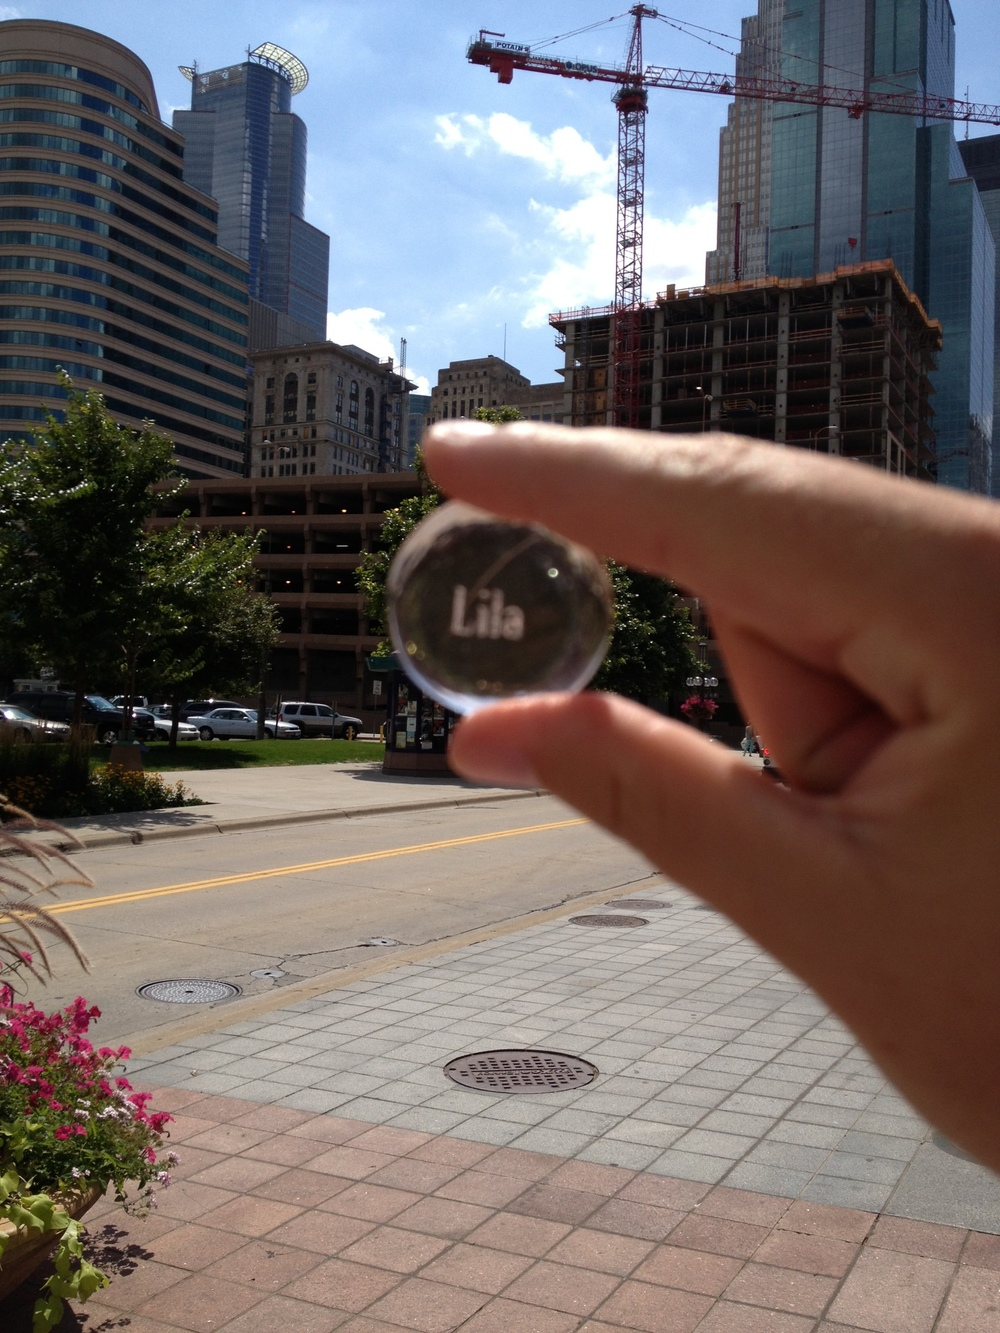 Lila stone in downtown Minneapolis